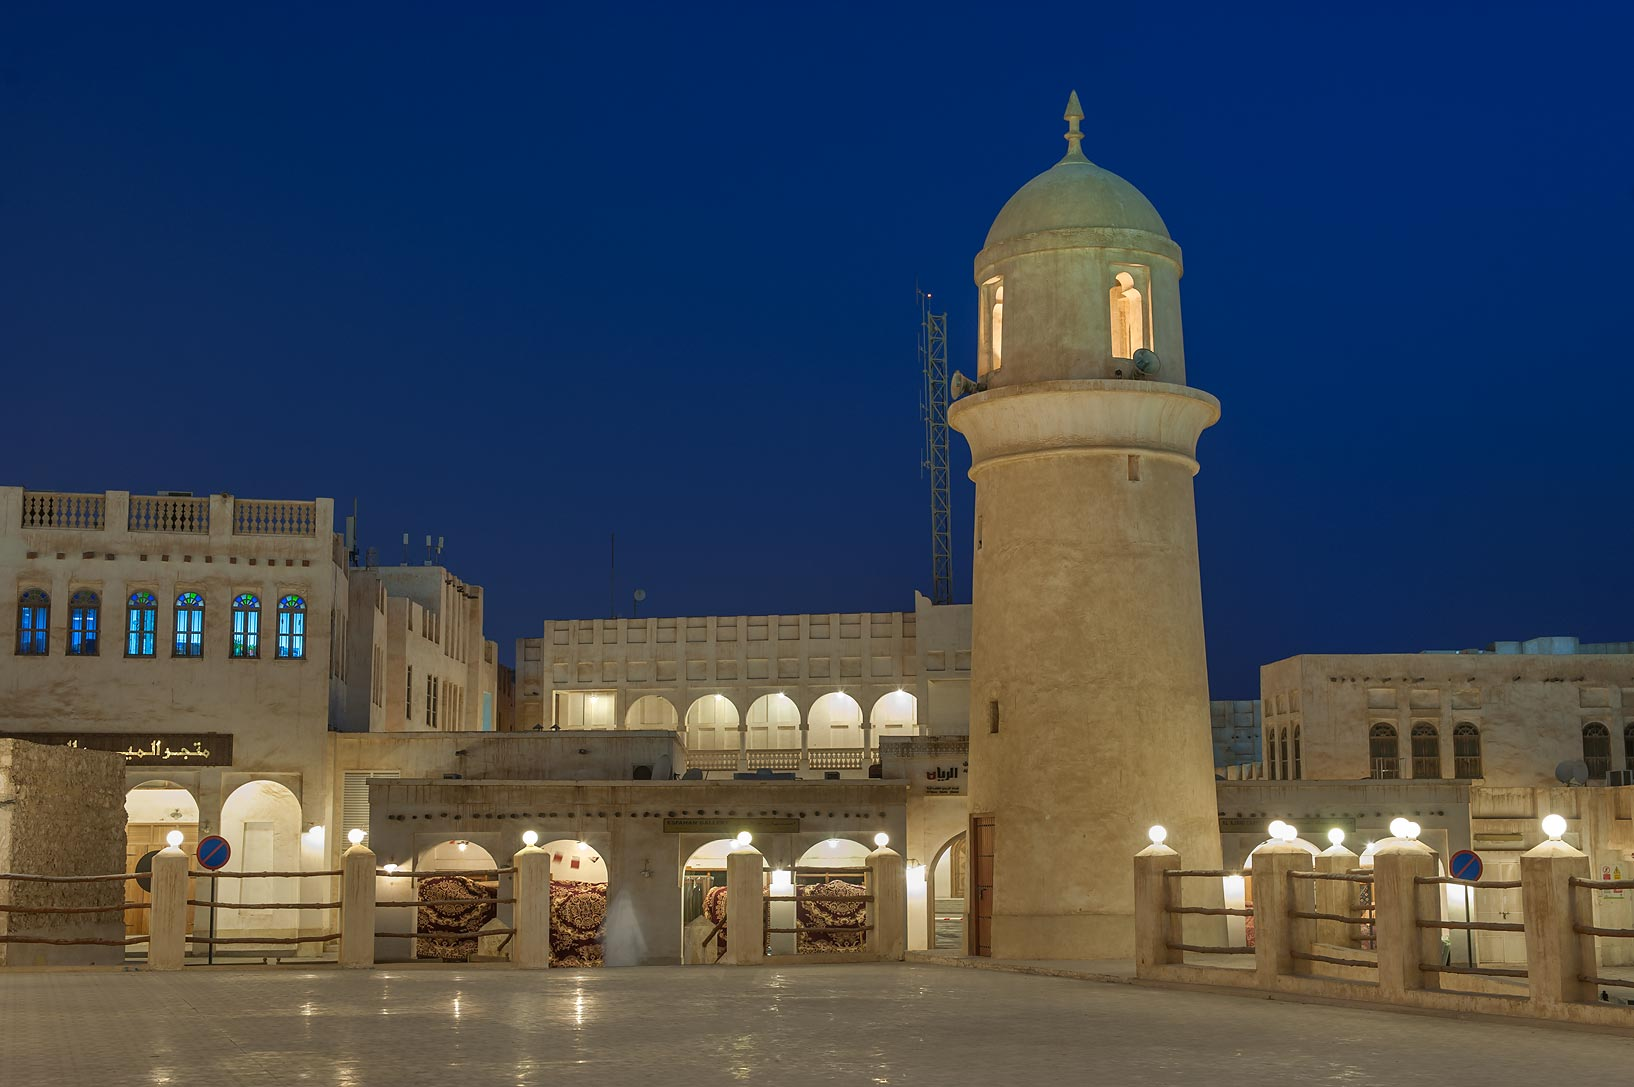 Minaret of Souq Waqif mosque at morning. Doha, Qatar